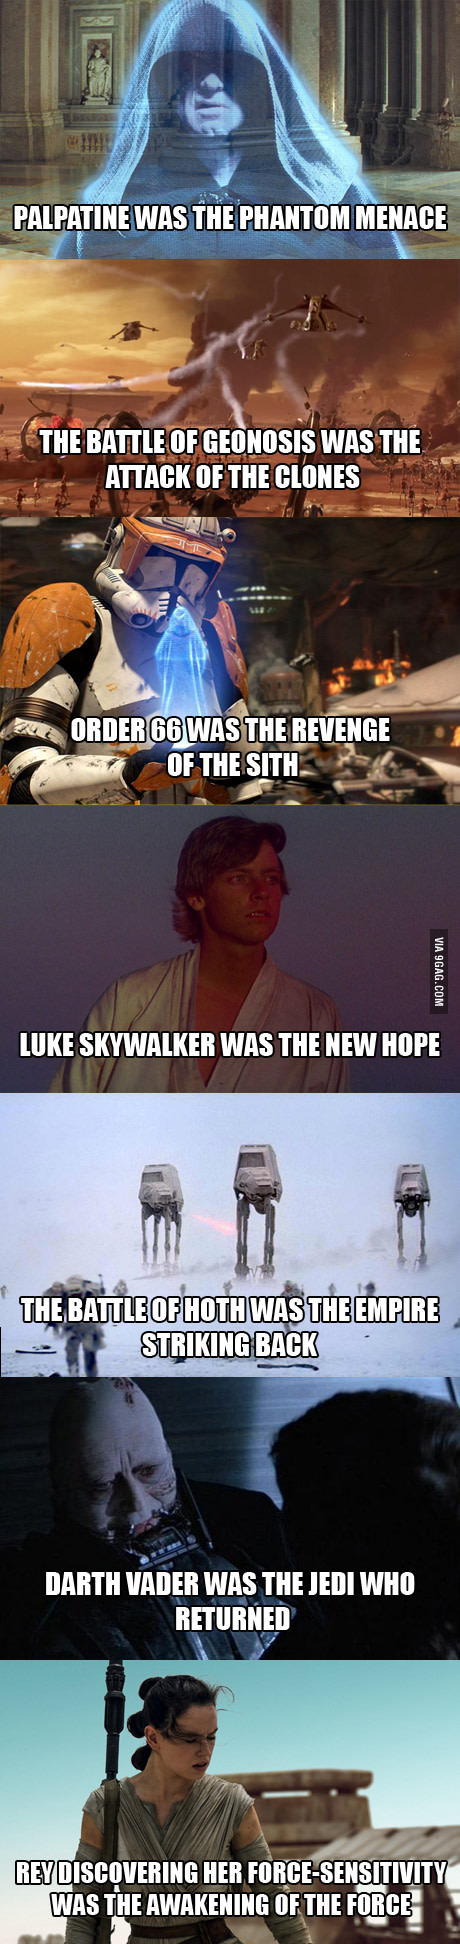 Interesting Star Wars Observations I Don T Agree With All Of Them But They Re Pretty Deep Funny Star Wars Memes Star Wars Humor Star Wars Memes